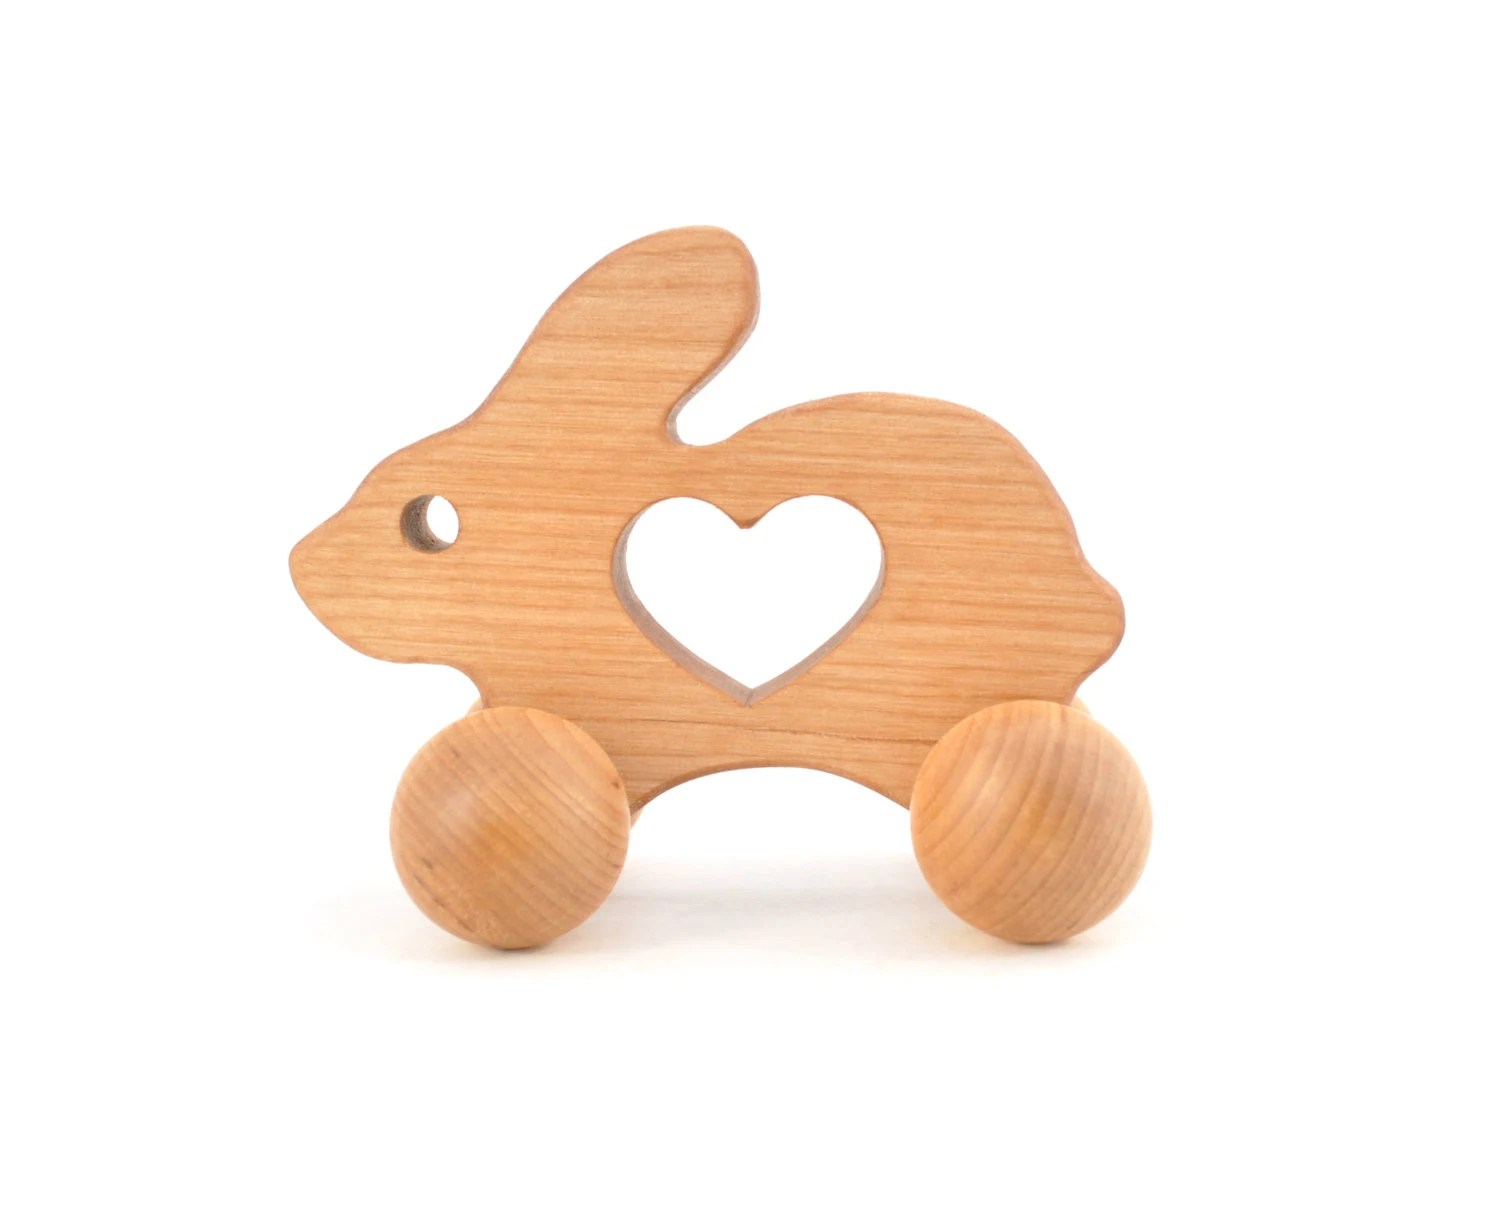 Wooden Easter Bunny Toy - Waldorf Wood Animal Toy -  Natural Rabbit Push Toy for Babies and Toddlers - Montessori Inspired Eco-Friendly Play - KeepsakeToys